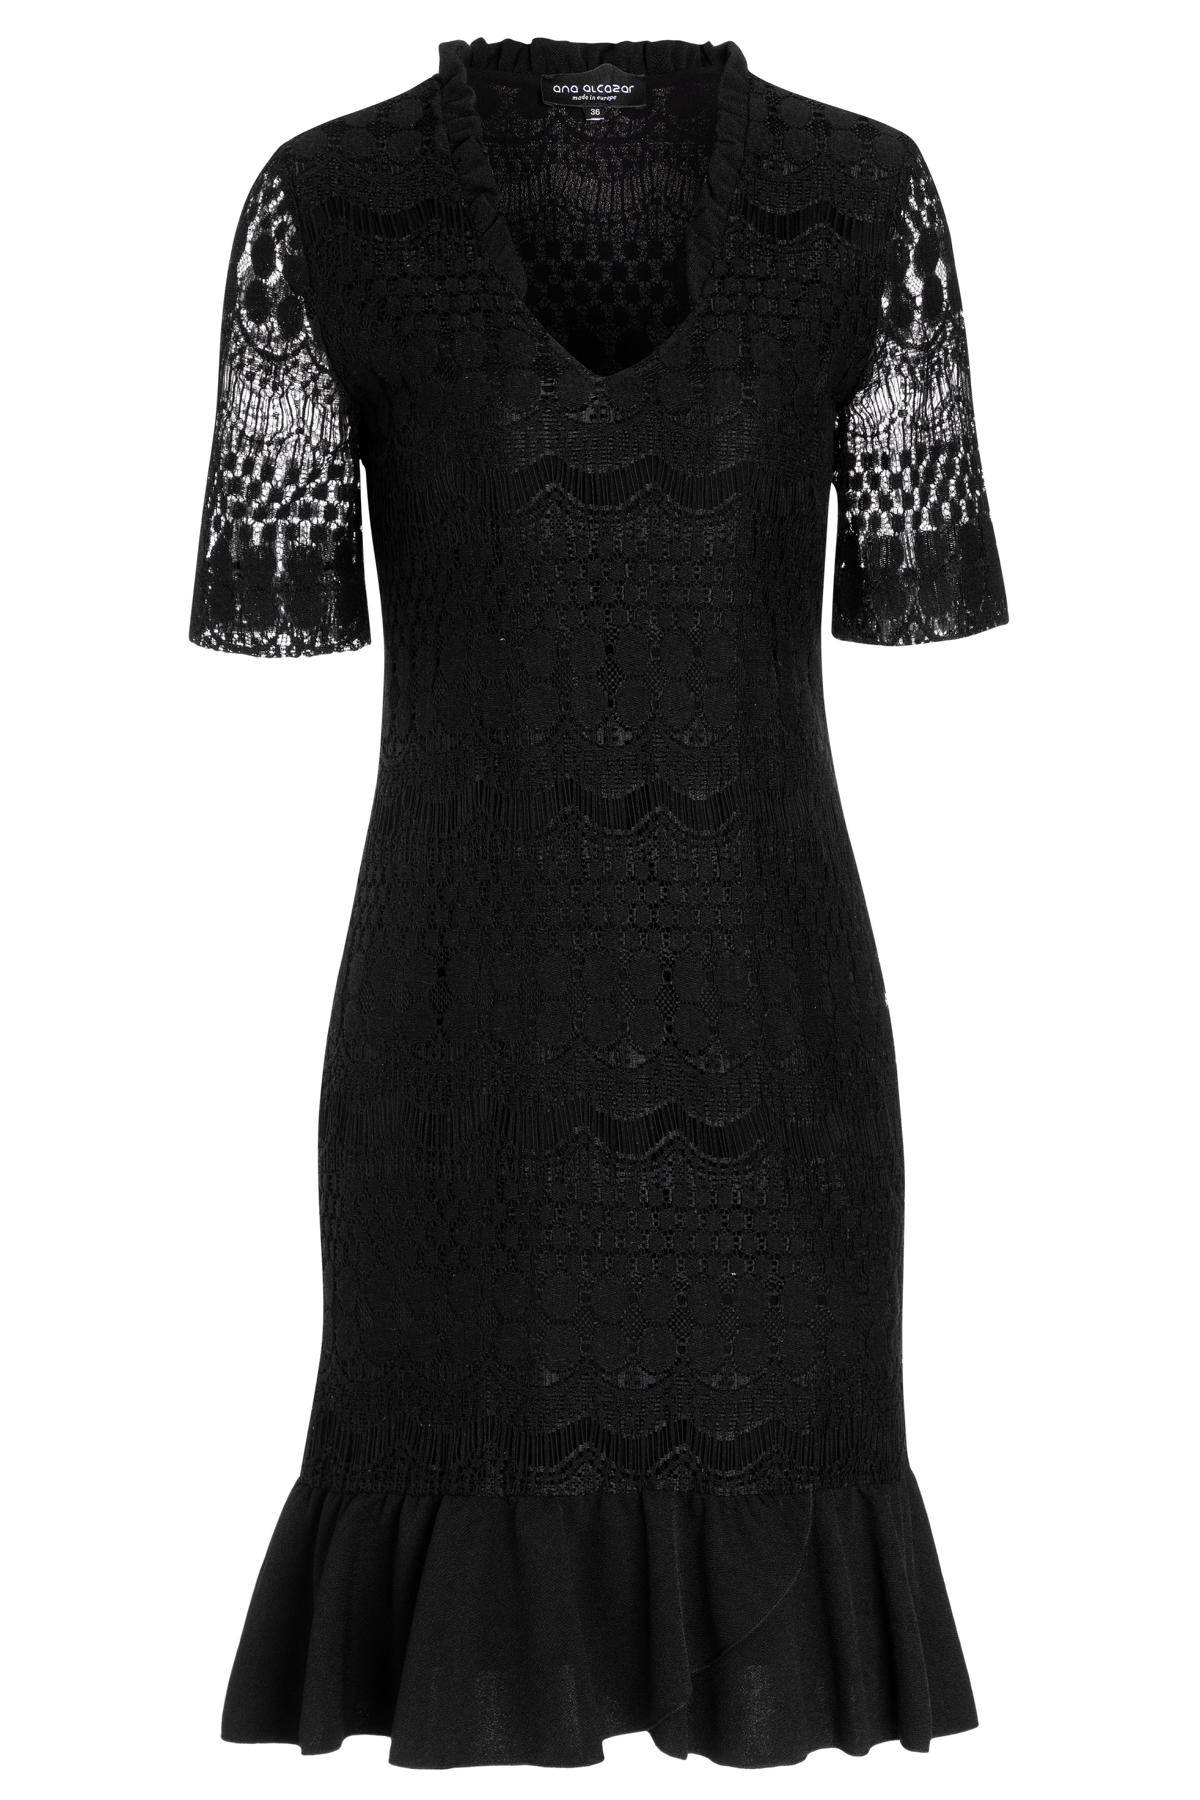 Ana Alcazar Shortsleeve Dress Santy Black